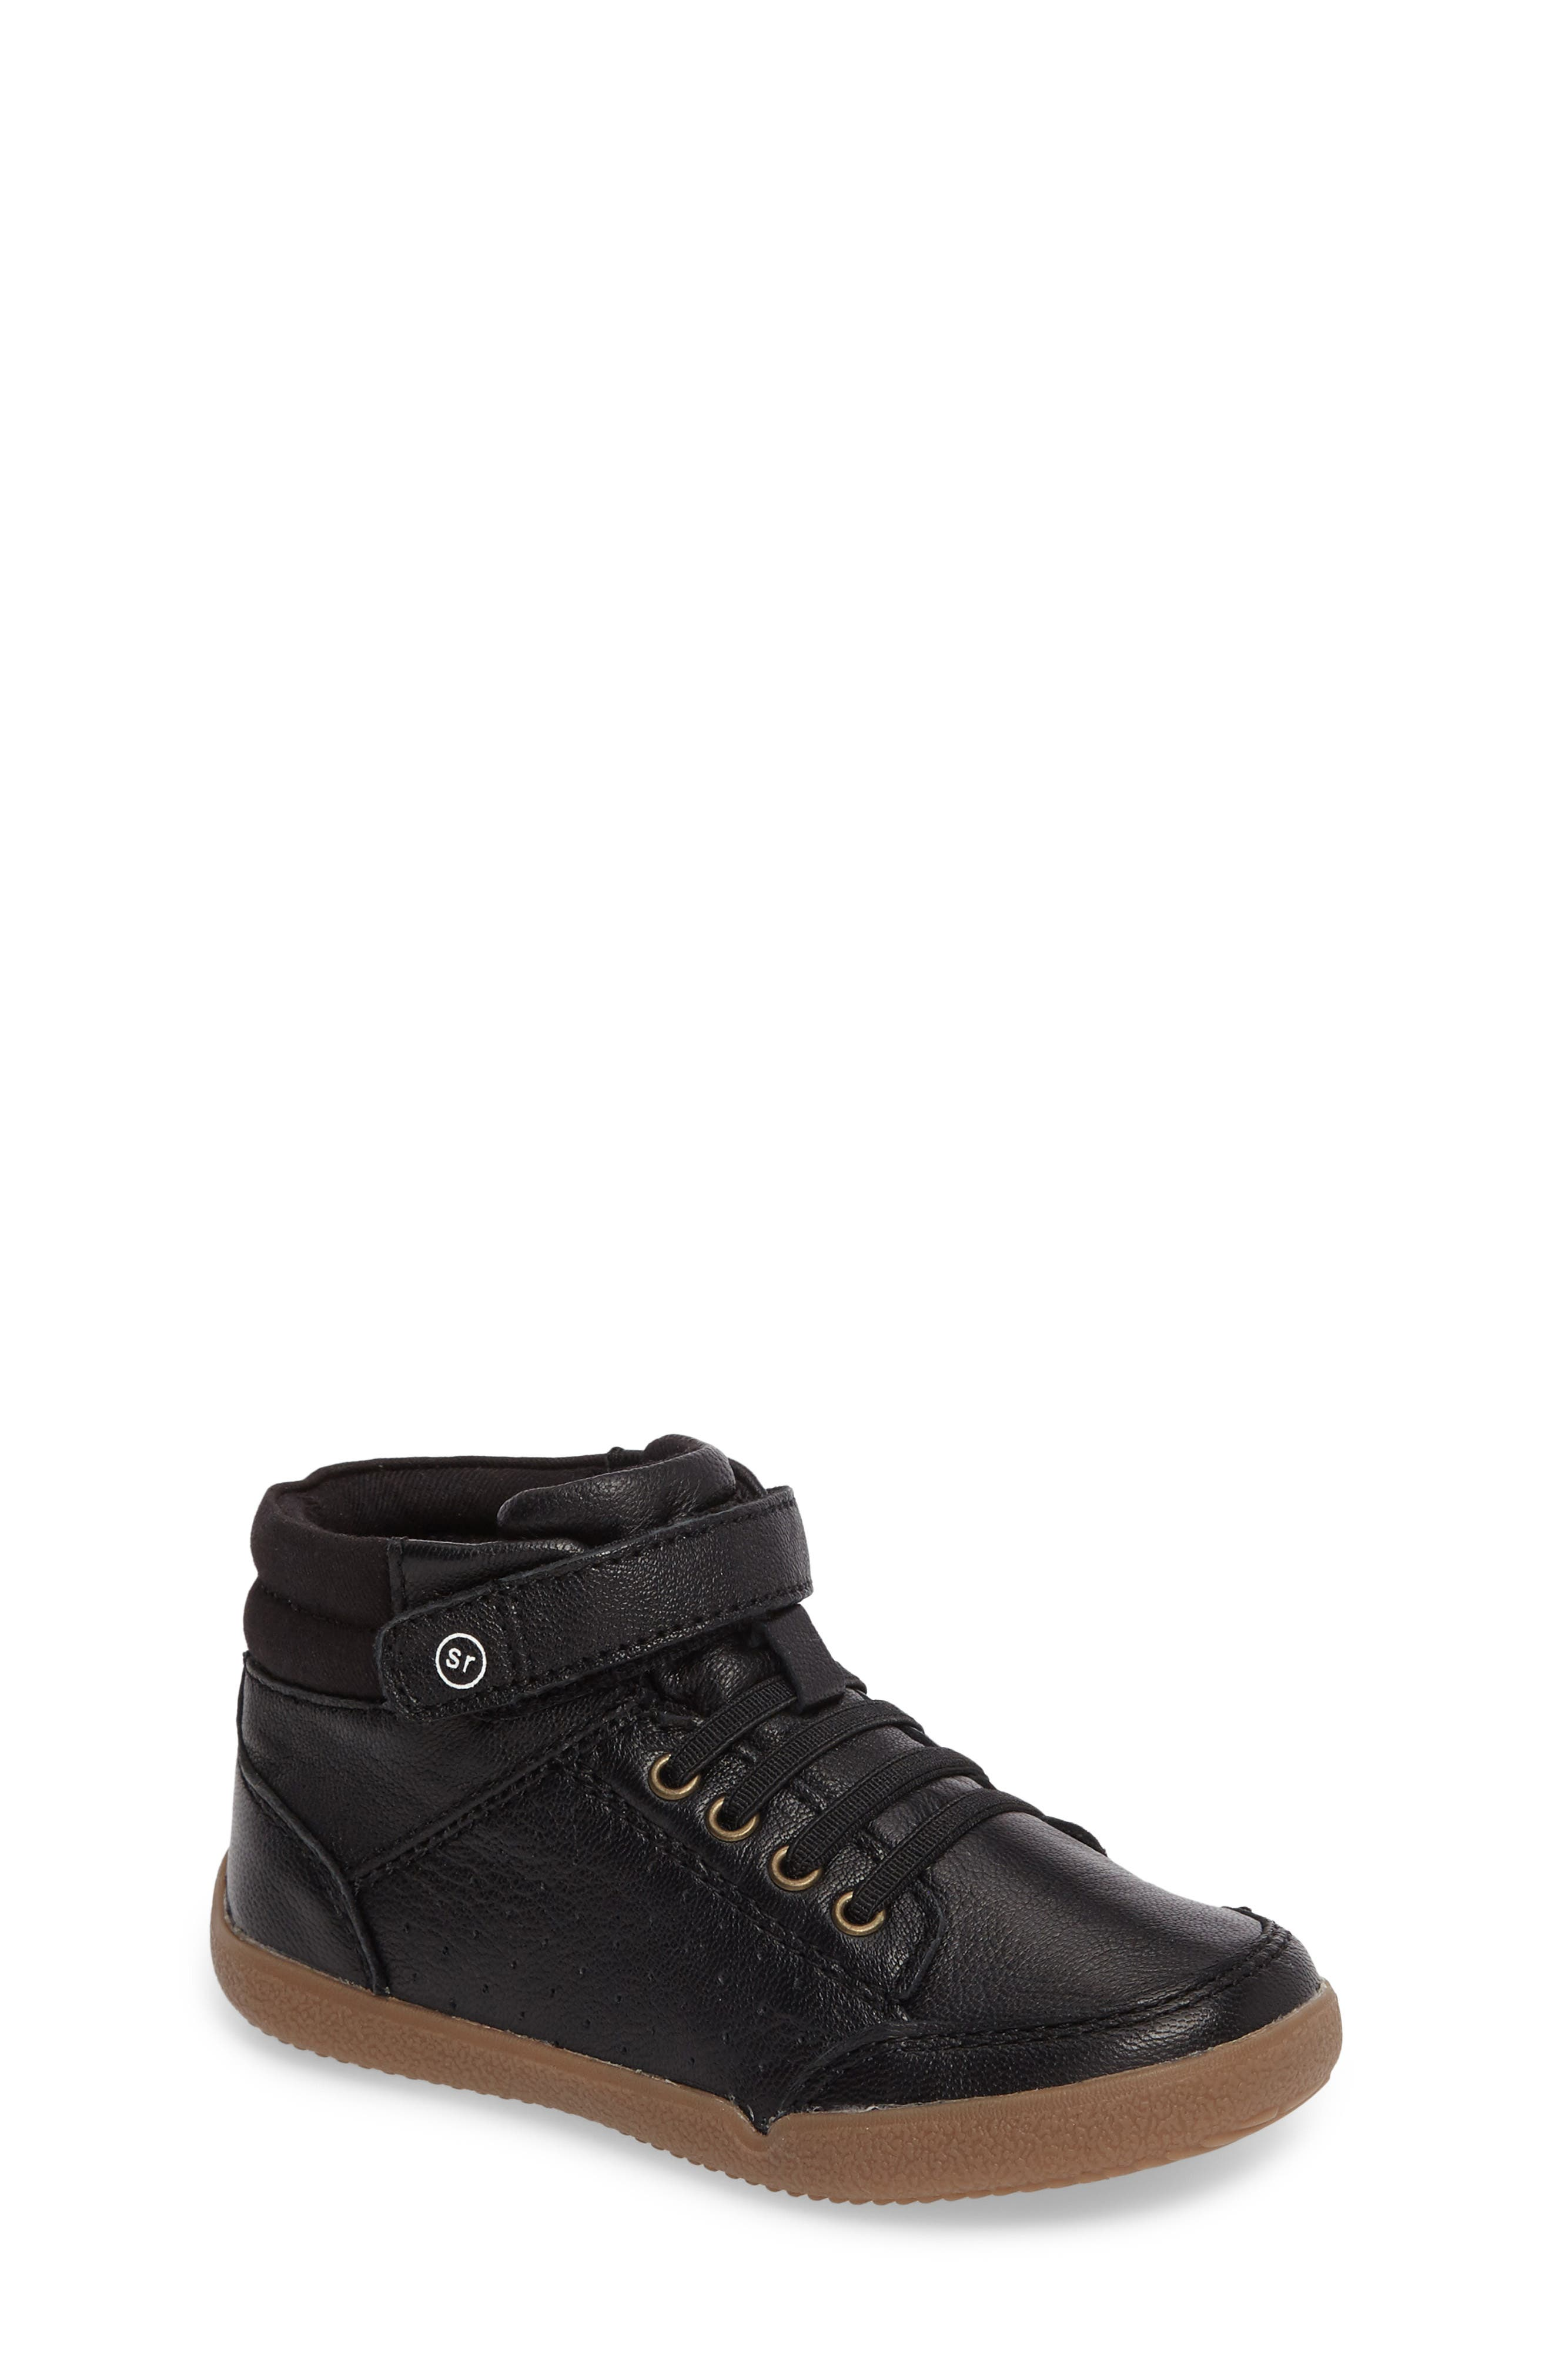 Stone High Top Sneaker,                             Main thumbnail 1, color,                             001